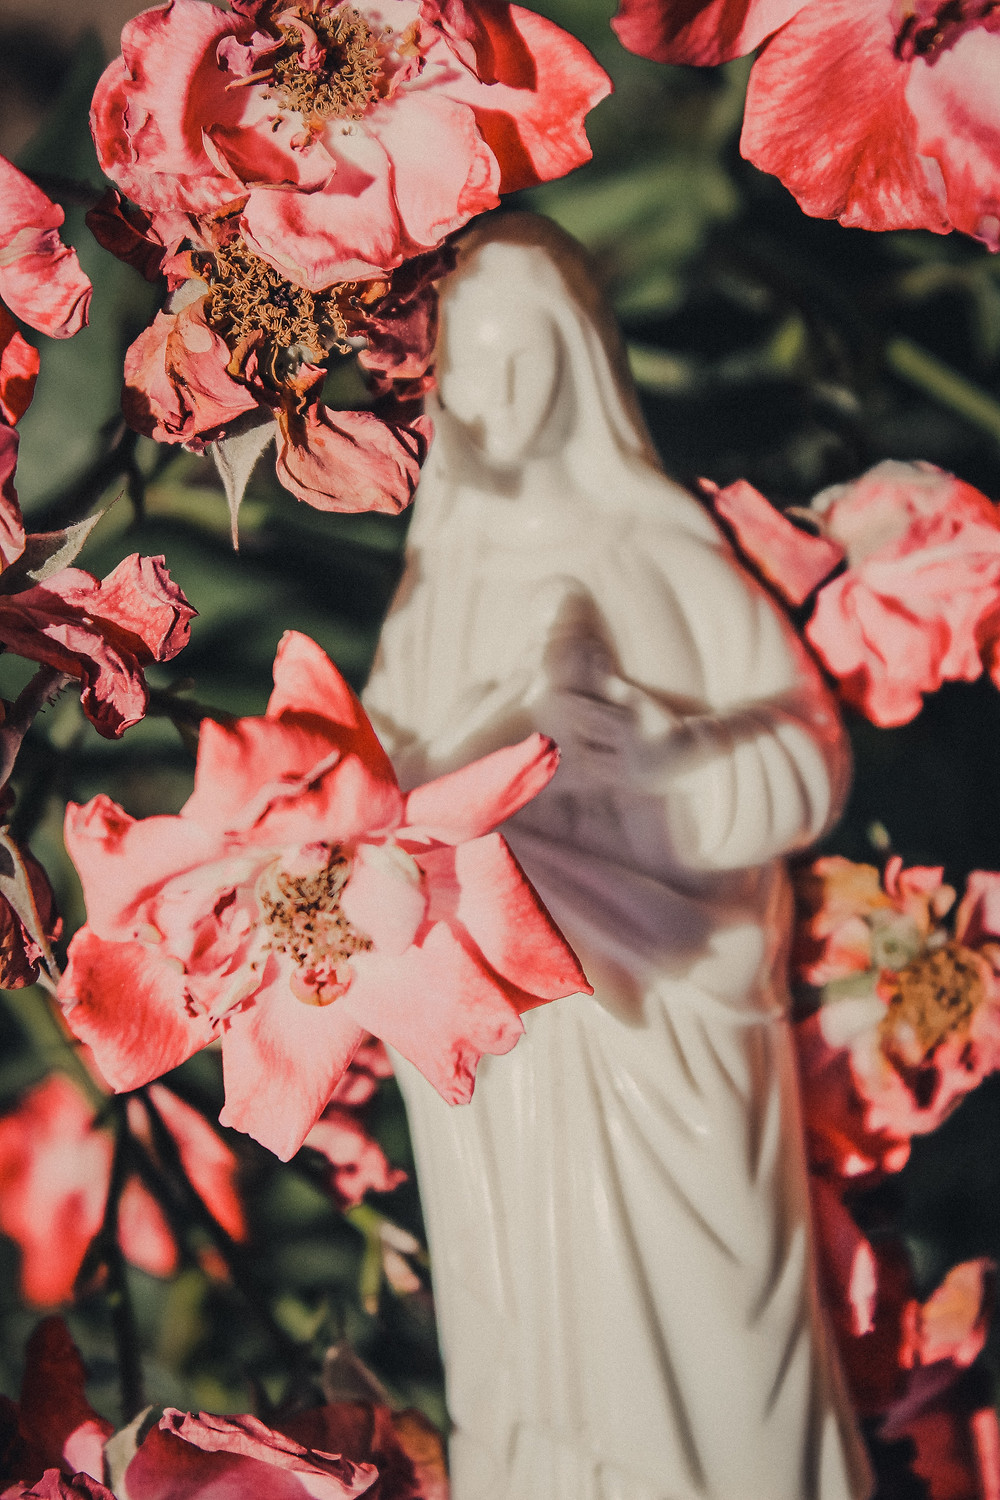 White statue of the Virgin Mary surrounded by delicate pink flowers